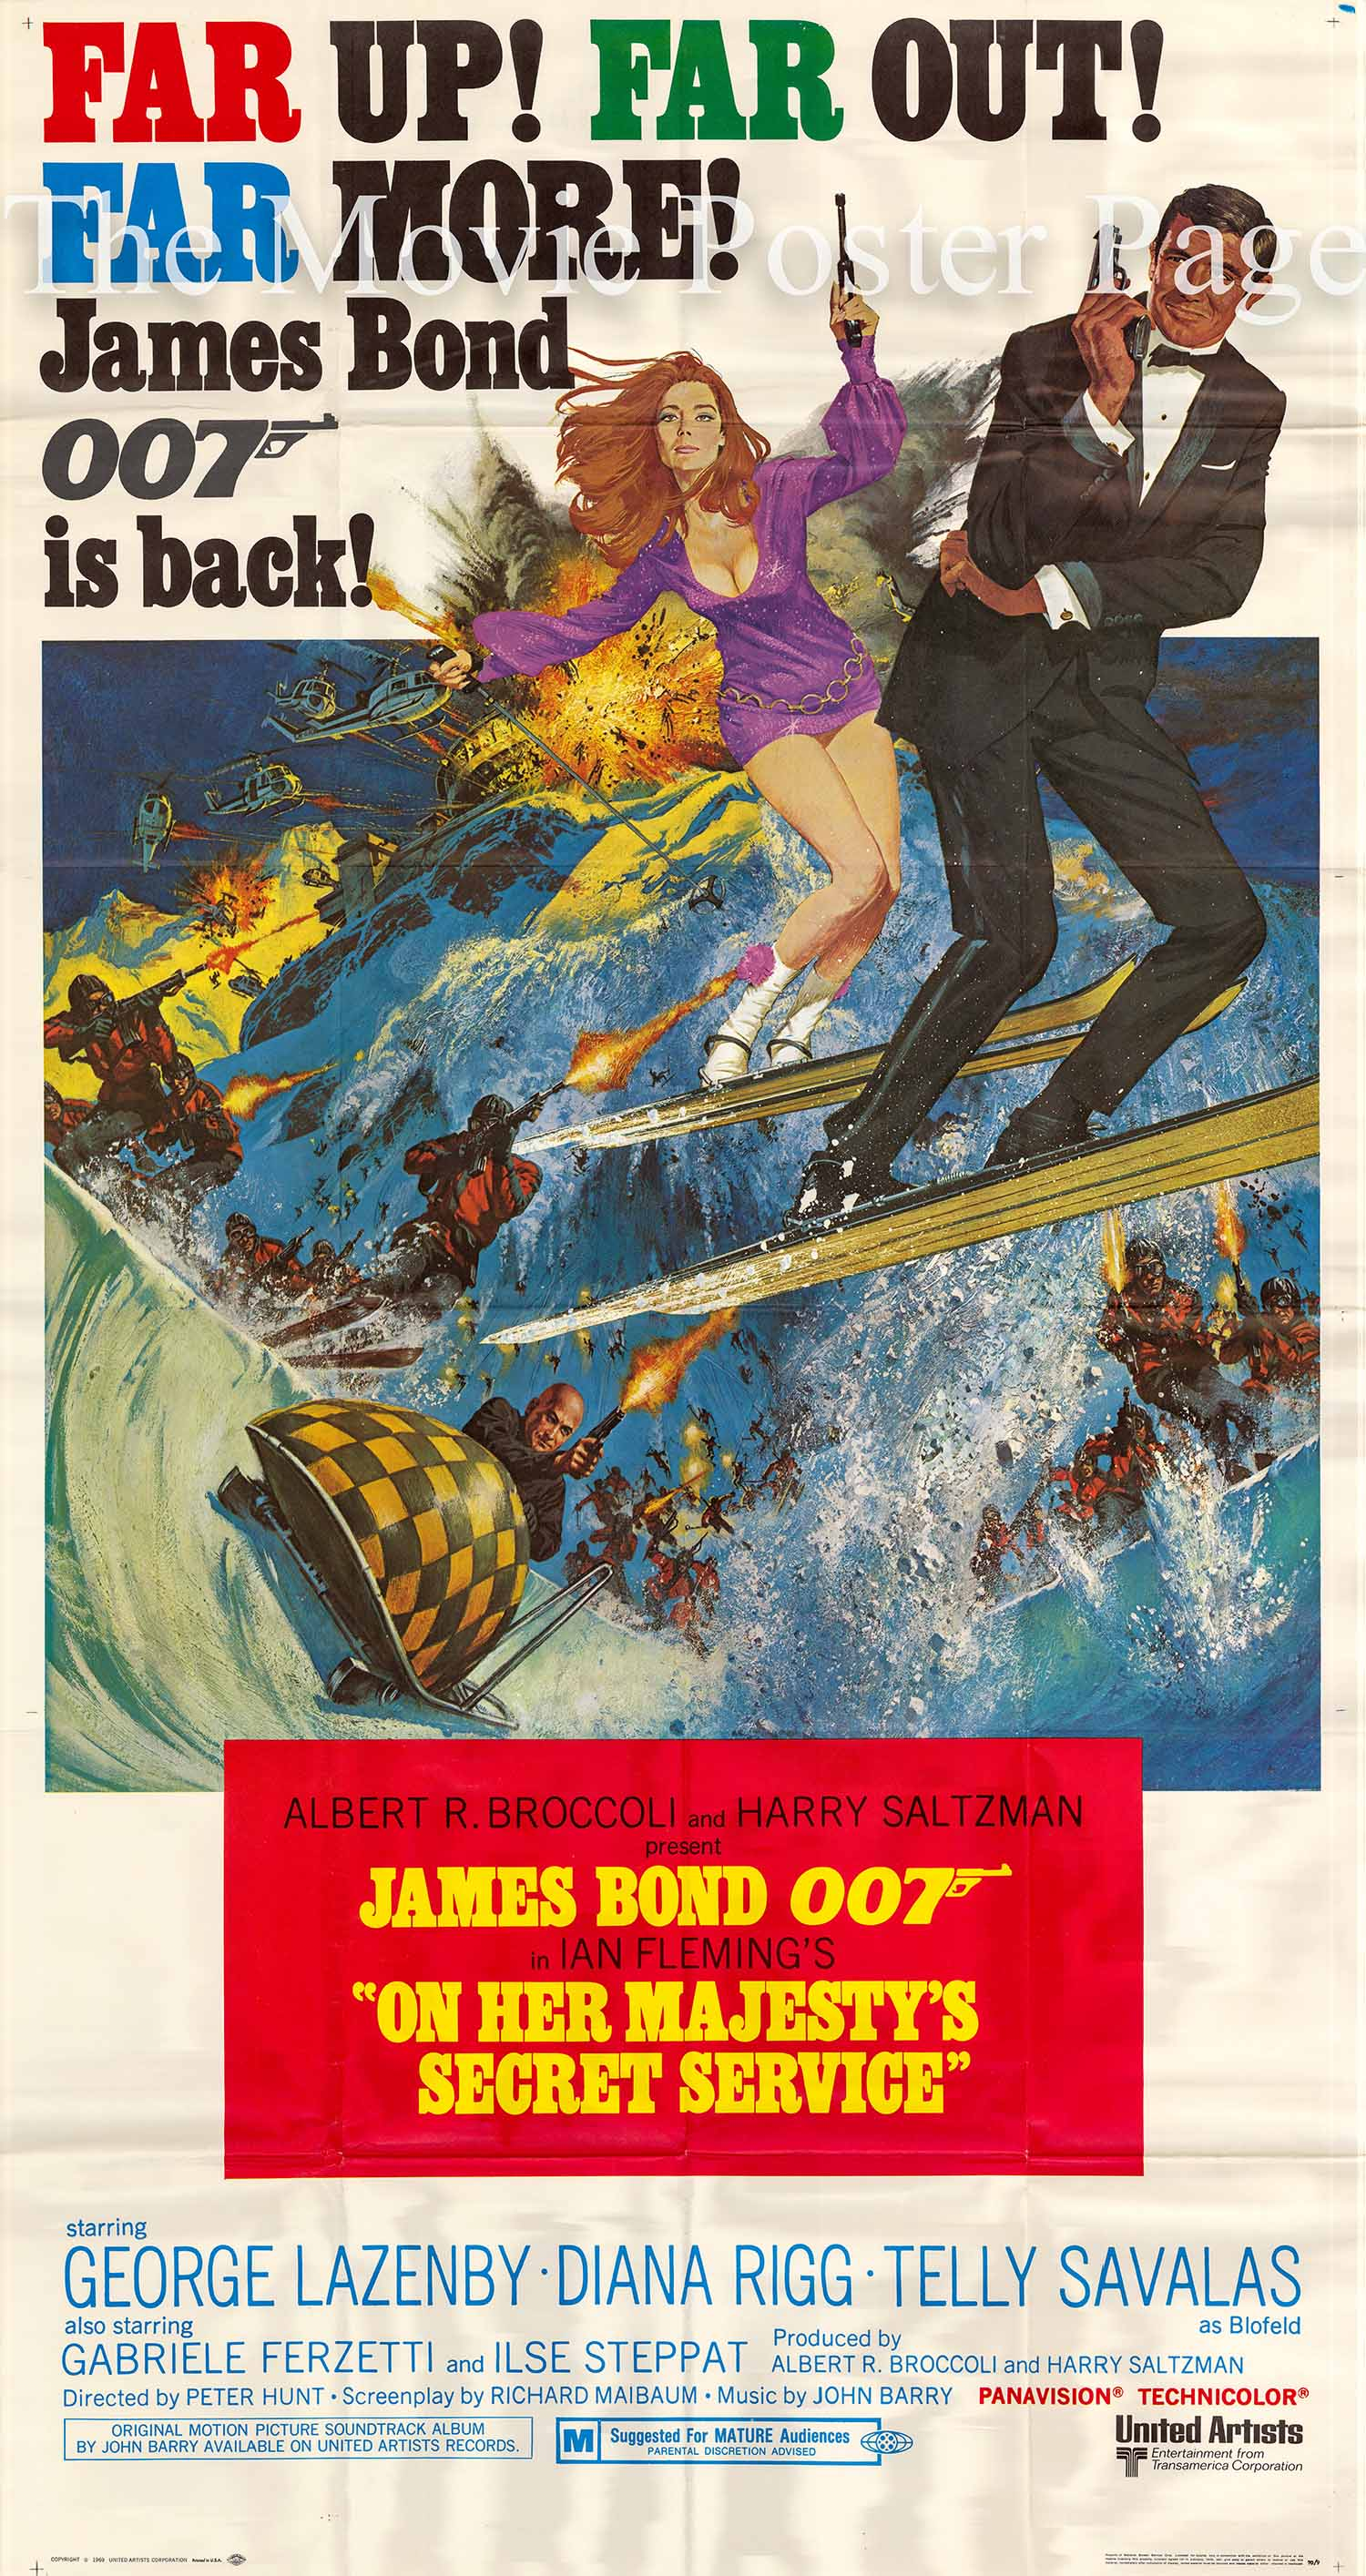 Pictured is a US three-sheet promotional poster for the 1969 Peter R. Hunt film On Her Majesty's Secret Service starring George Lazenby as James Bond.